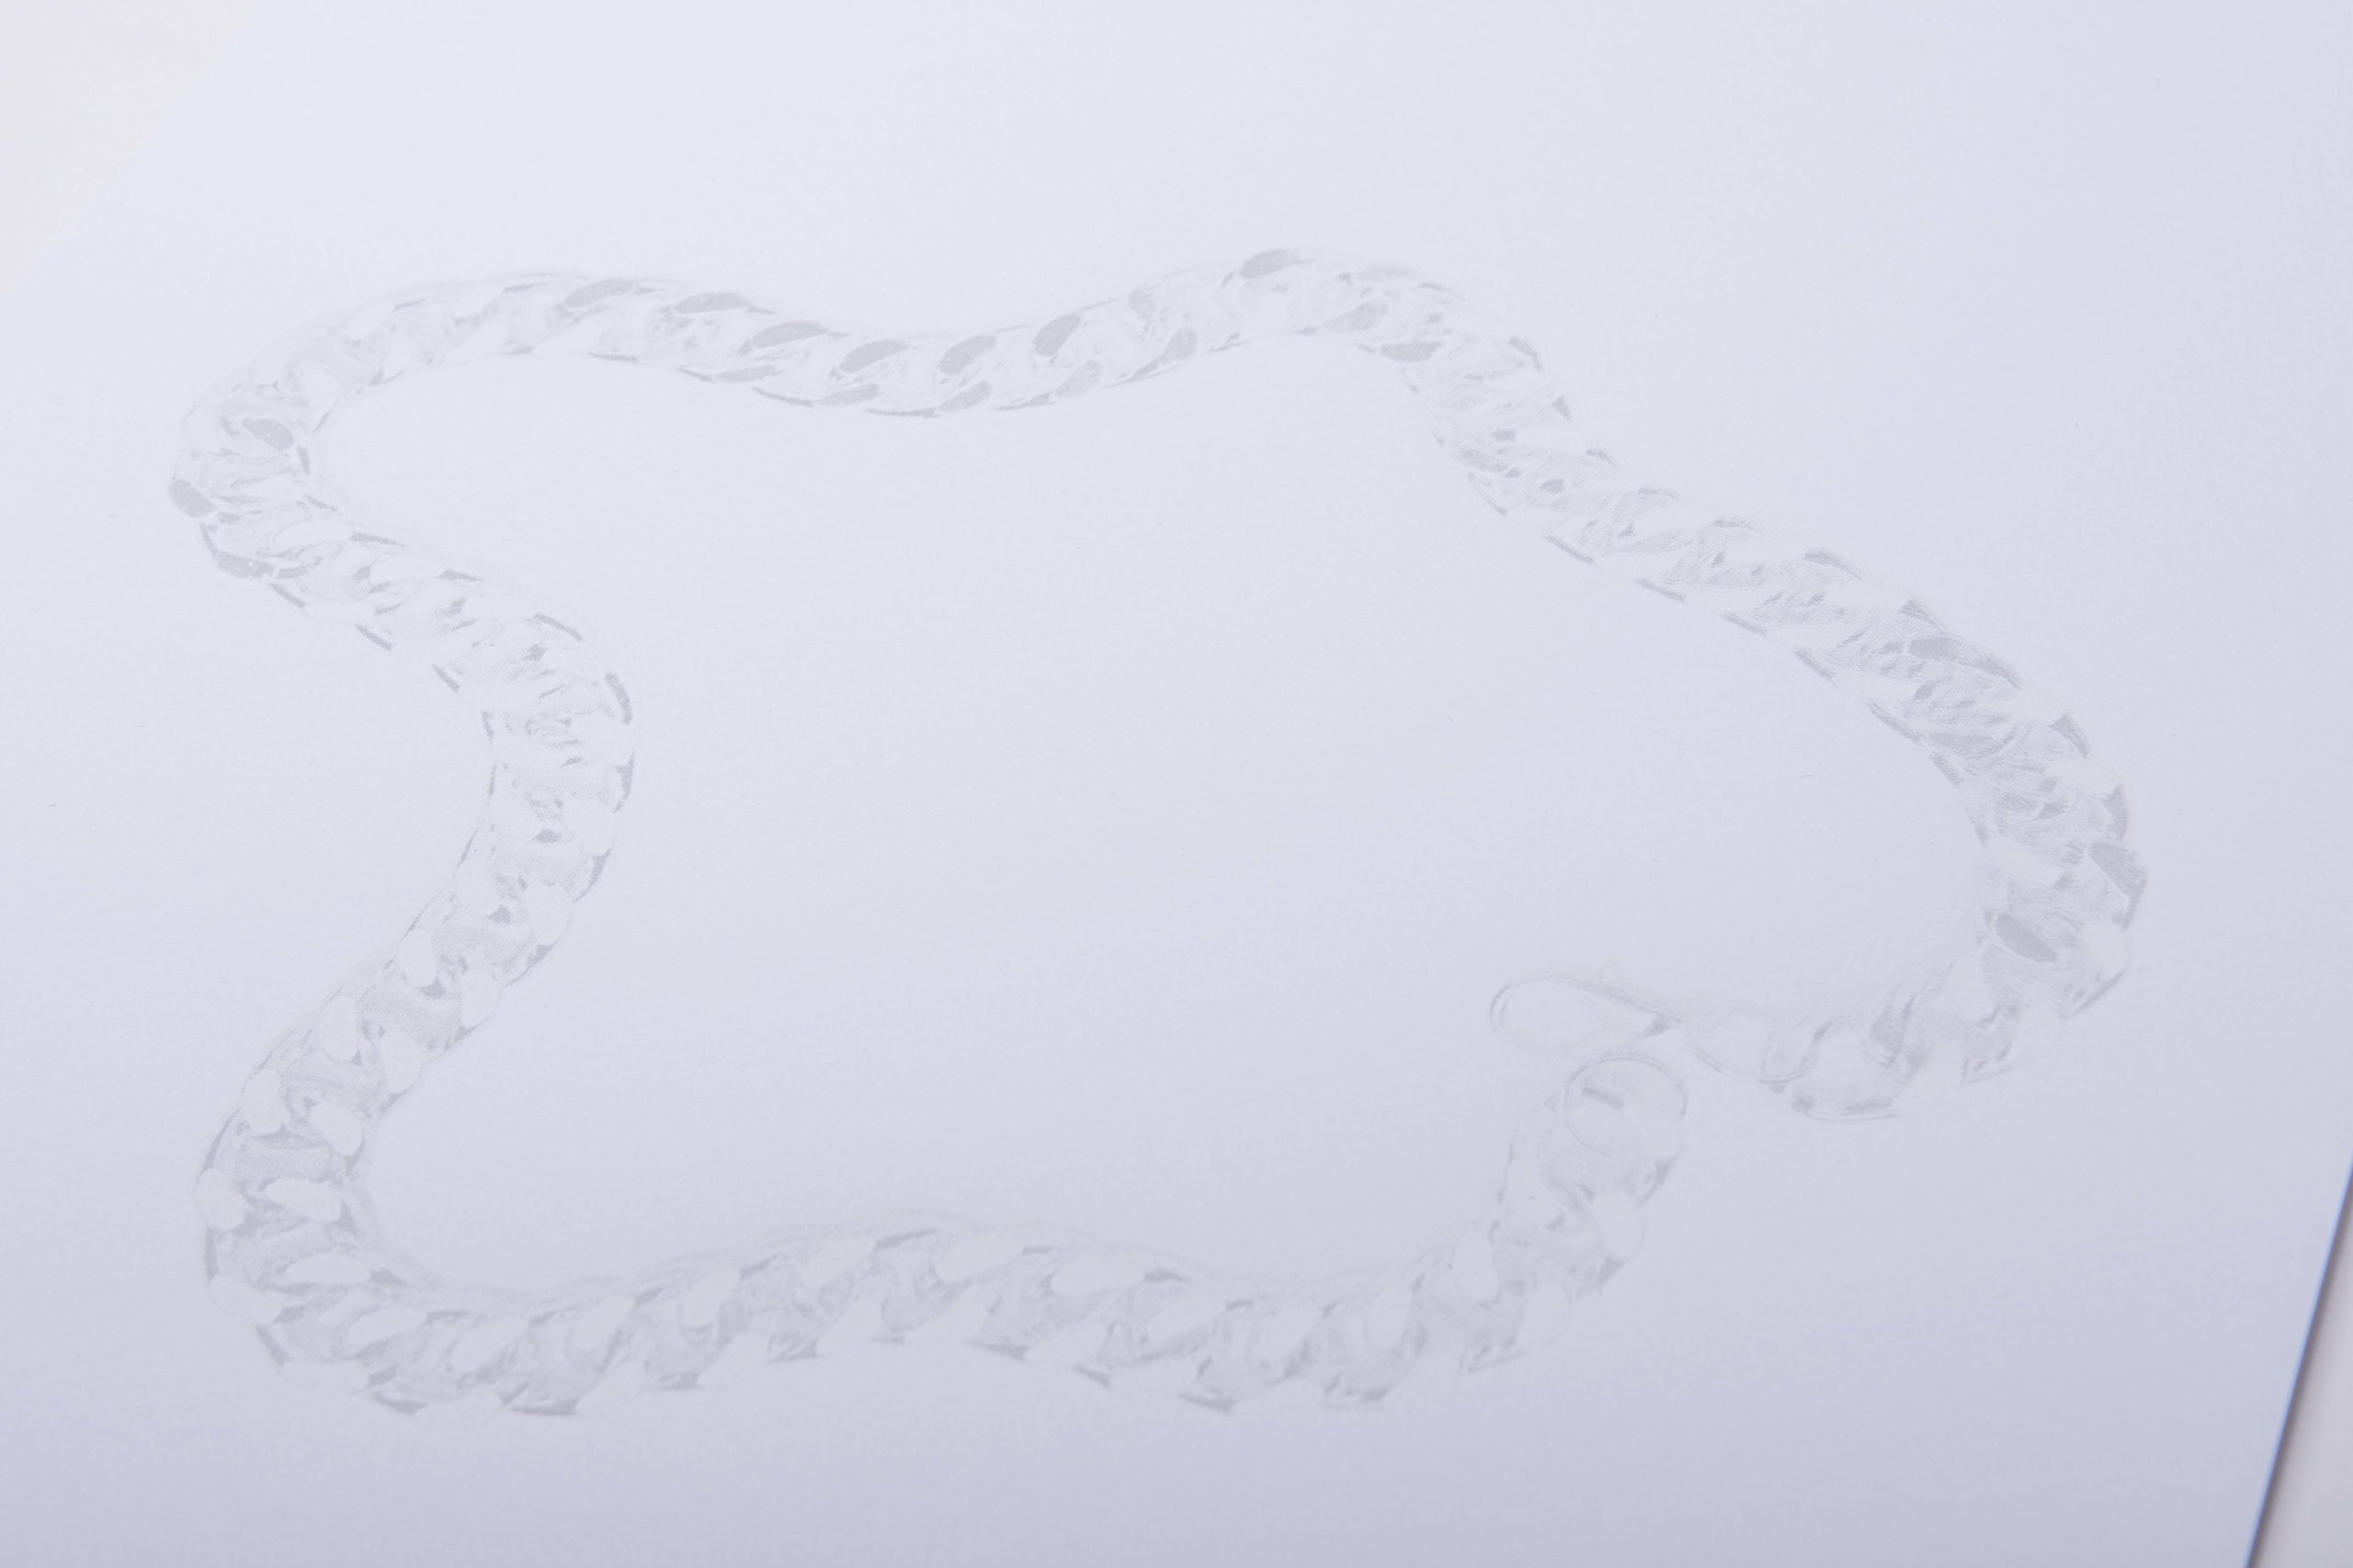 HipHopEmergedChain2-scaled